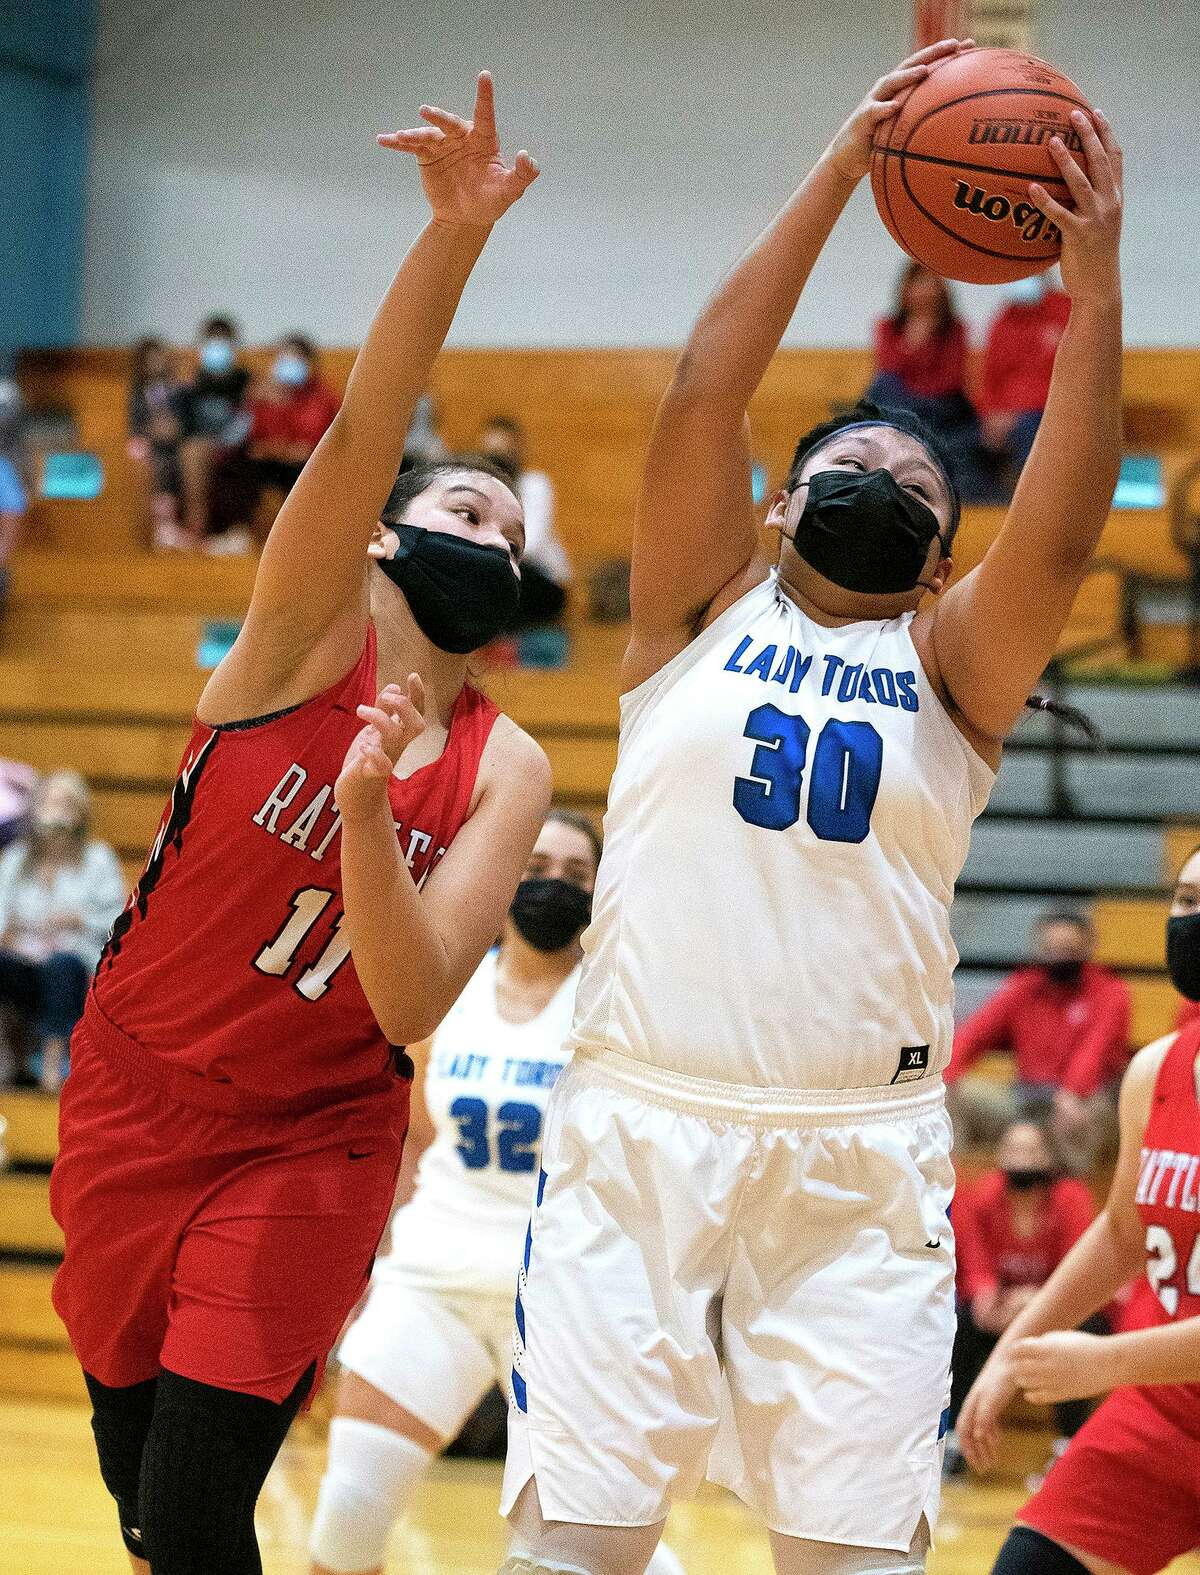 Amanda Arreola and Cigarroa fell 38-34 in the District 30-5A opener against Rio Grande City.